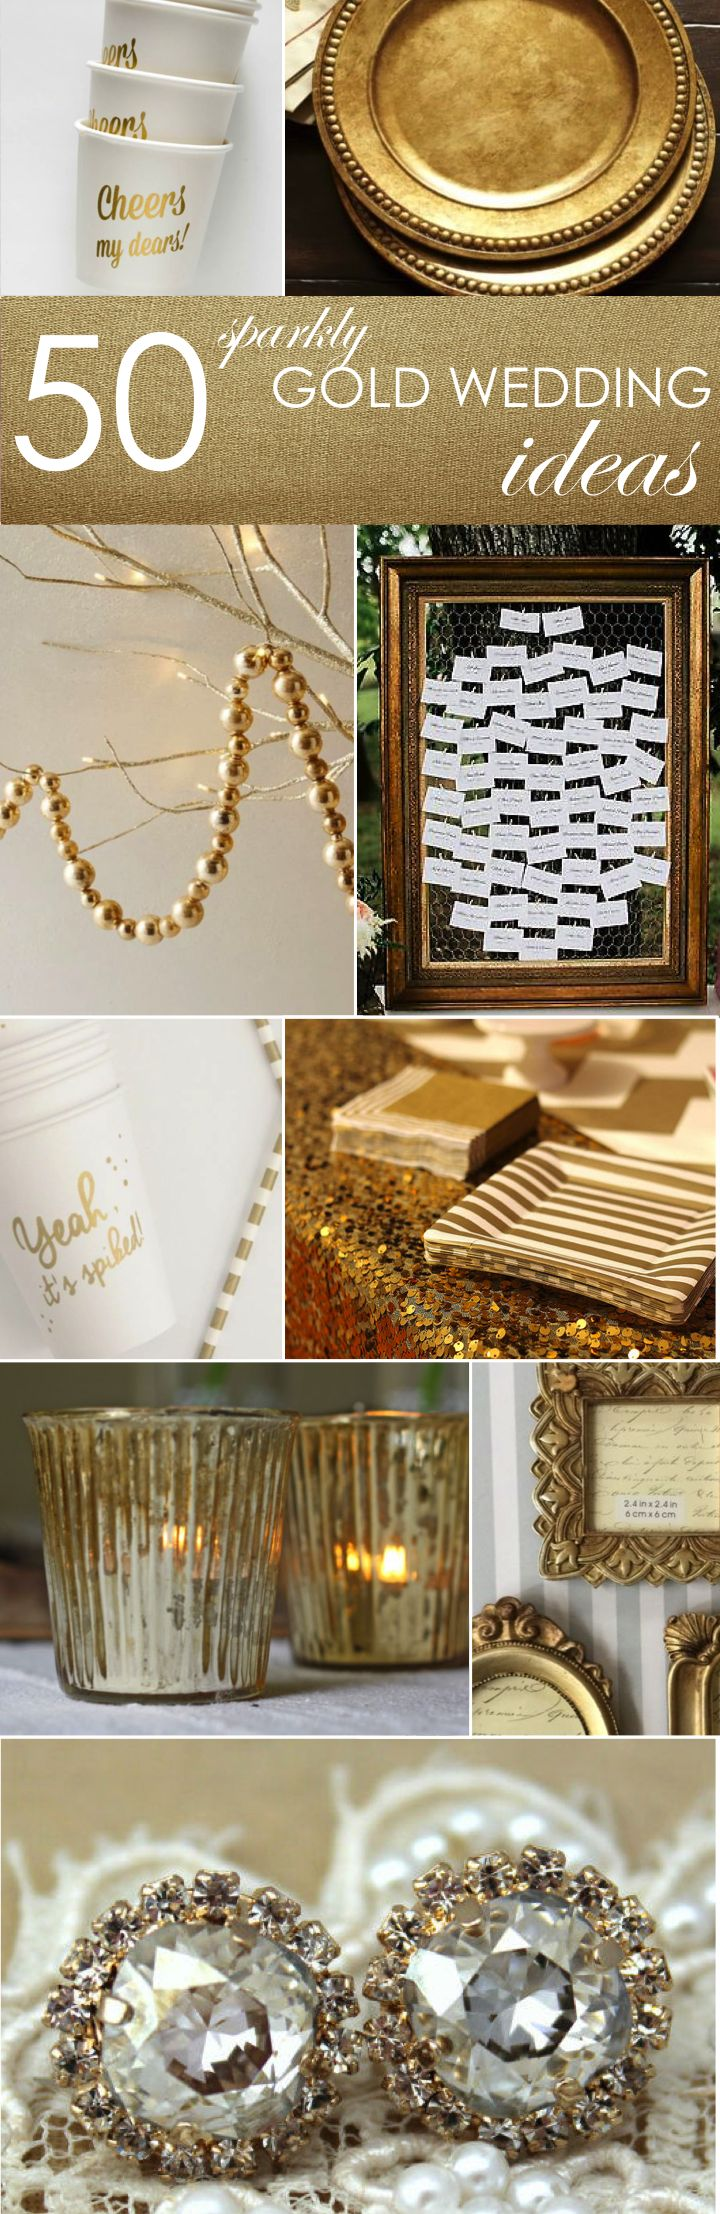 25 best ideas about 50th anniversary decorations on for 25 anniversary decoration ideas